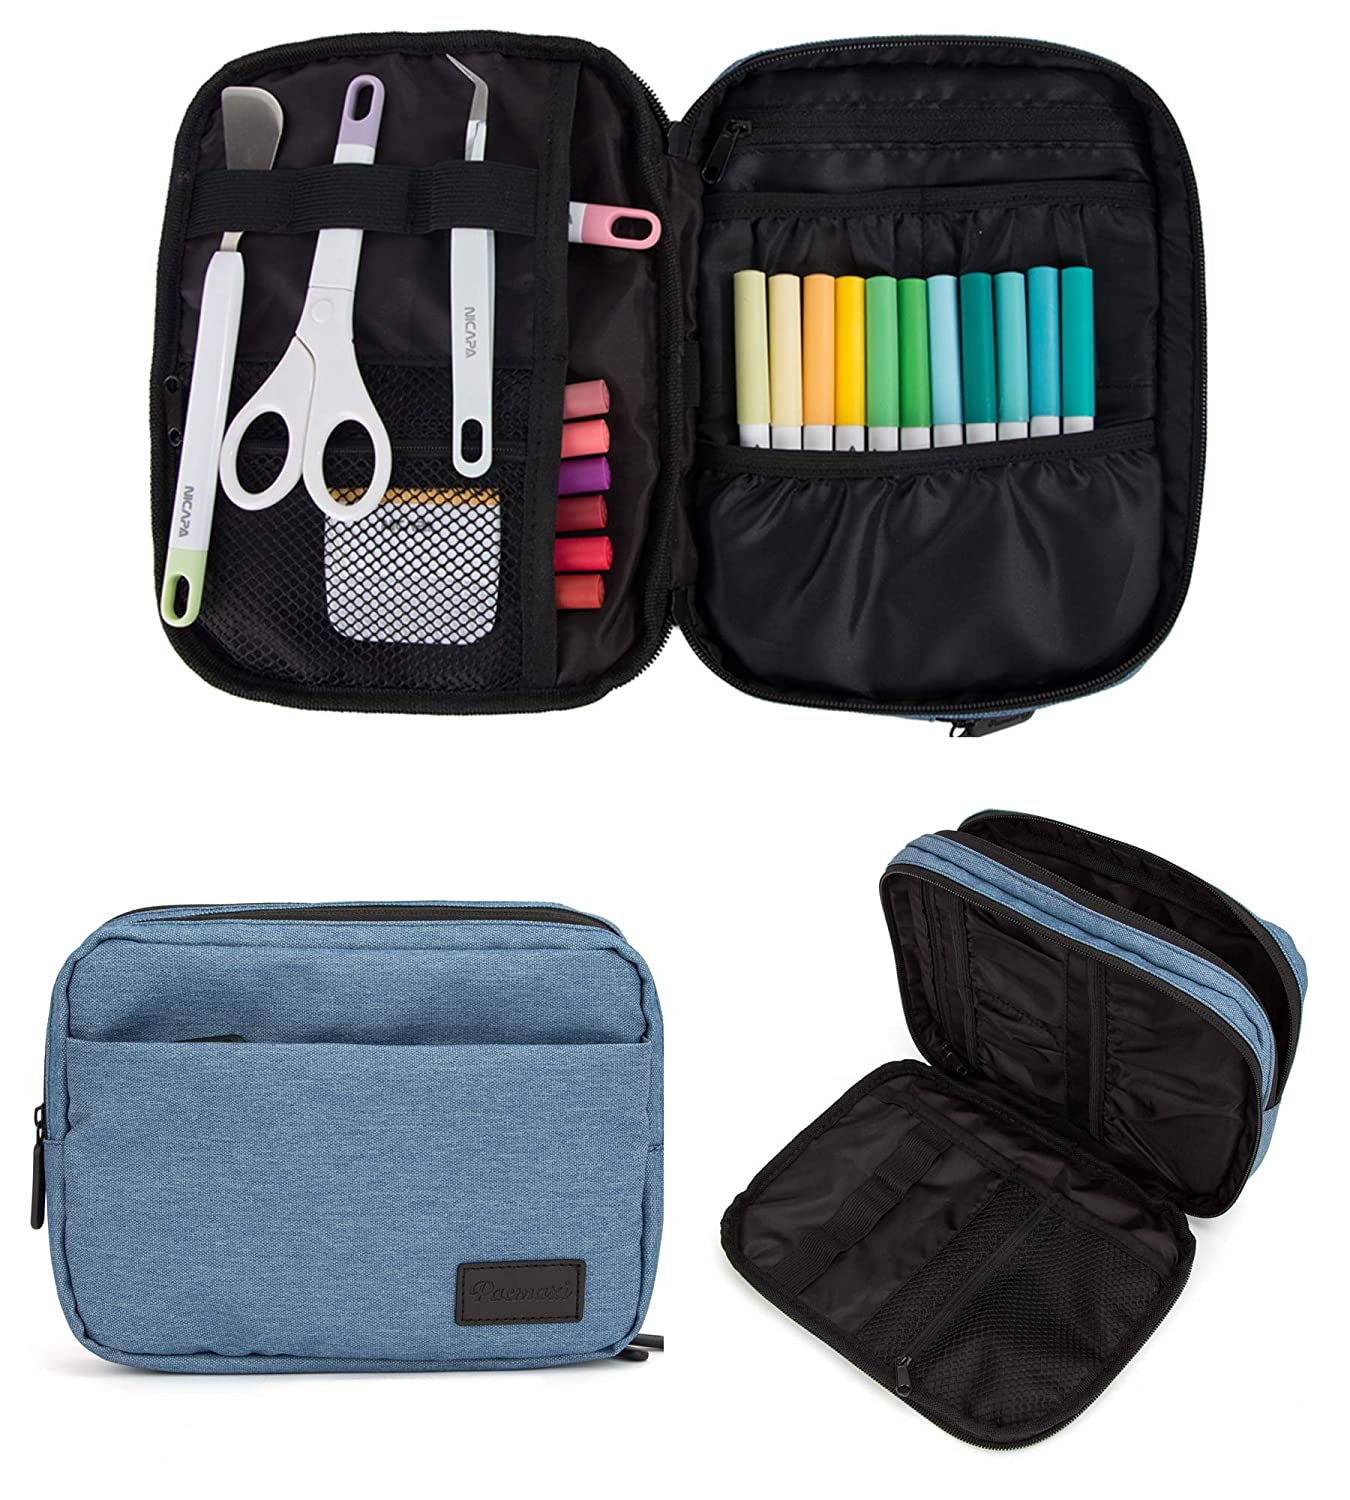 Carrying Bag for Cricut Easypress Accessories Double-Layer Organizer Case for Cricut Pen Set and Basic Tool Set Storage. Not Include Other Accessories